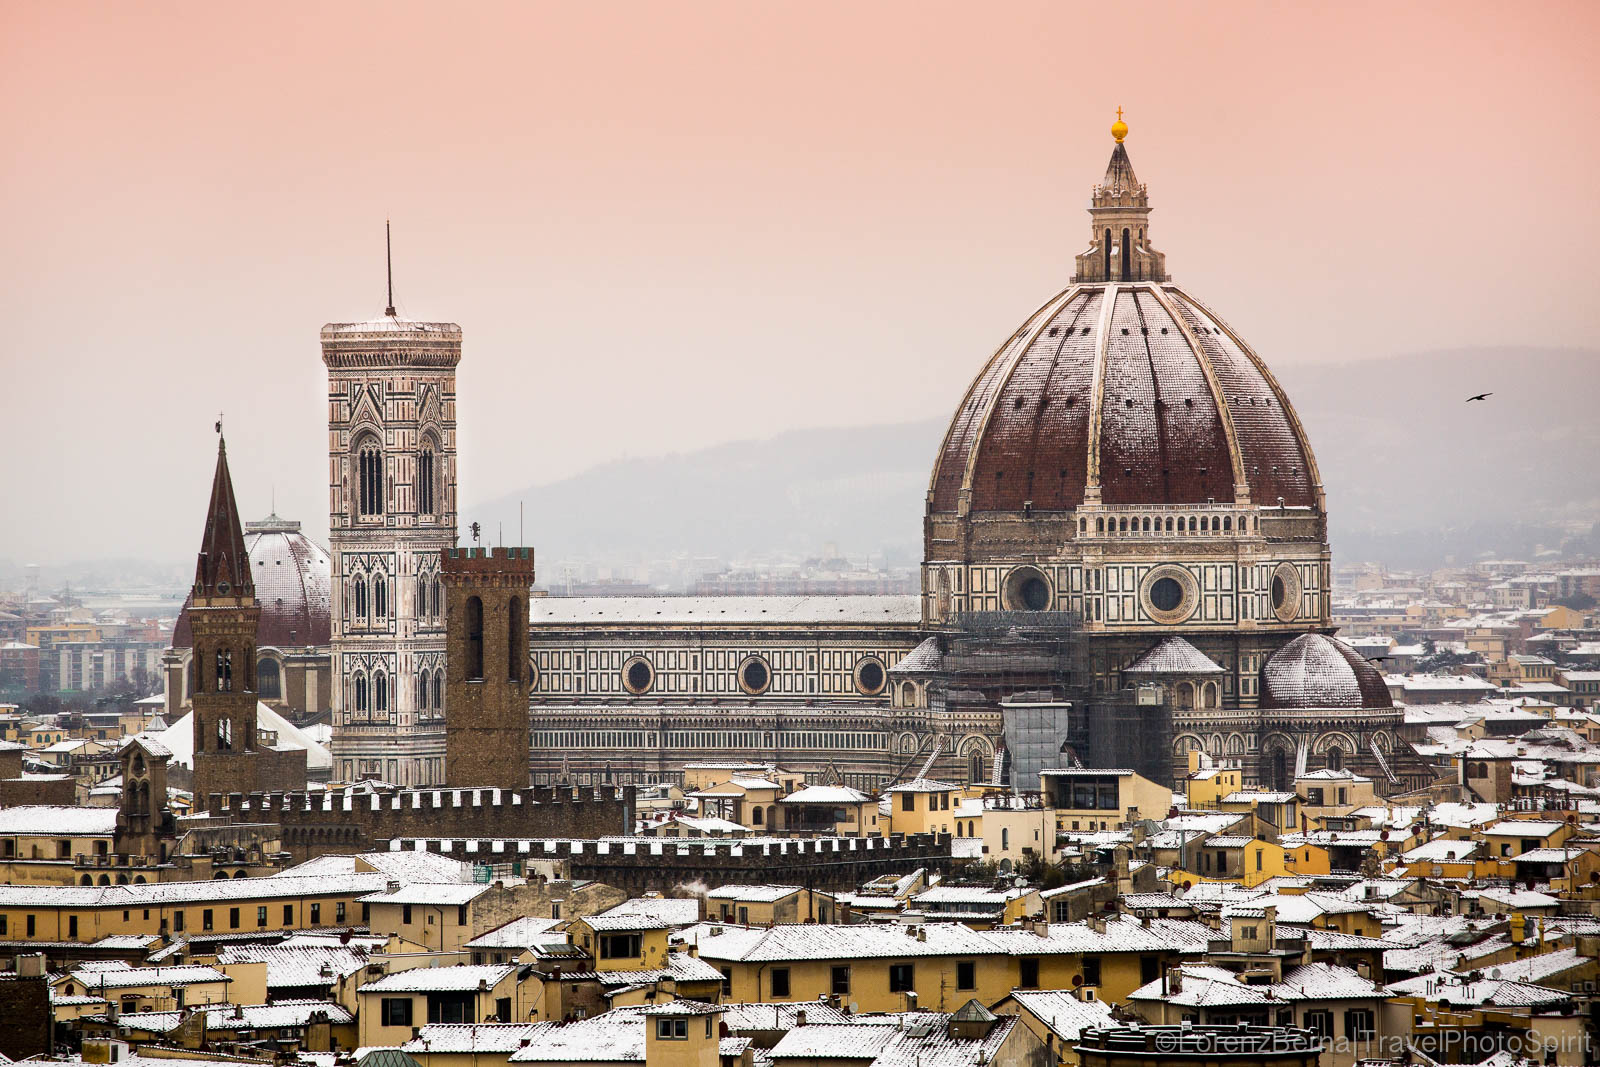 Florence under the snow : a winter morning view from the Piazzale Michelangelo - Italy Travel Photography by Lorenz Berna